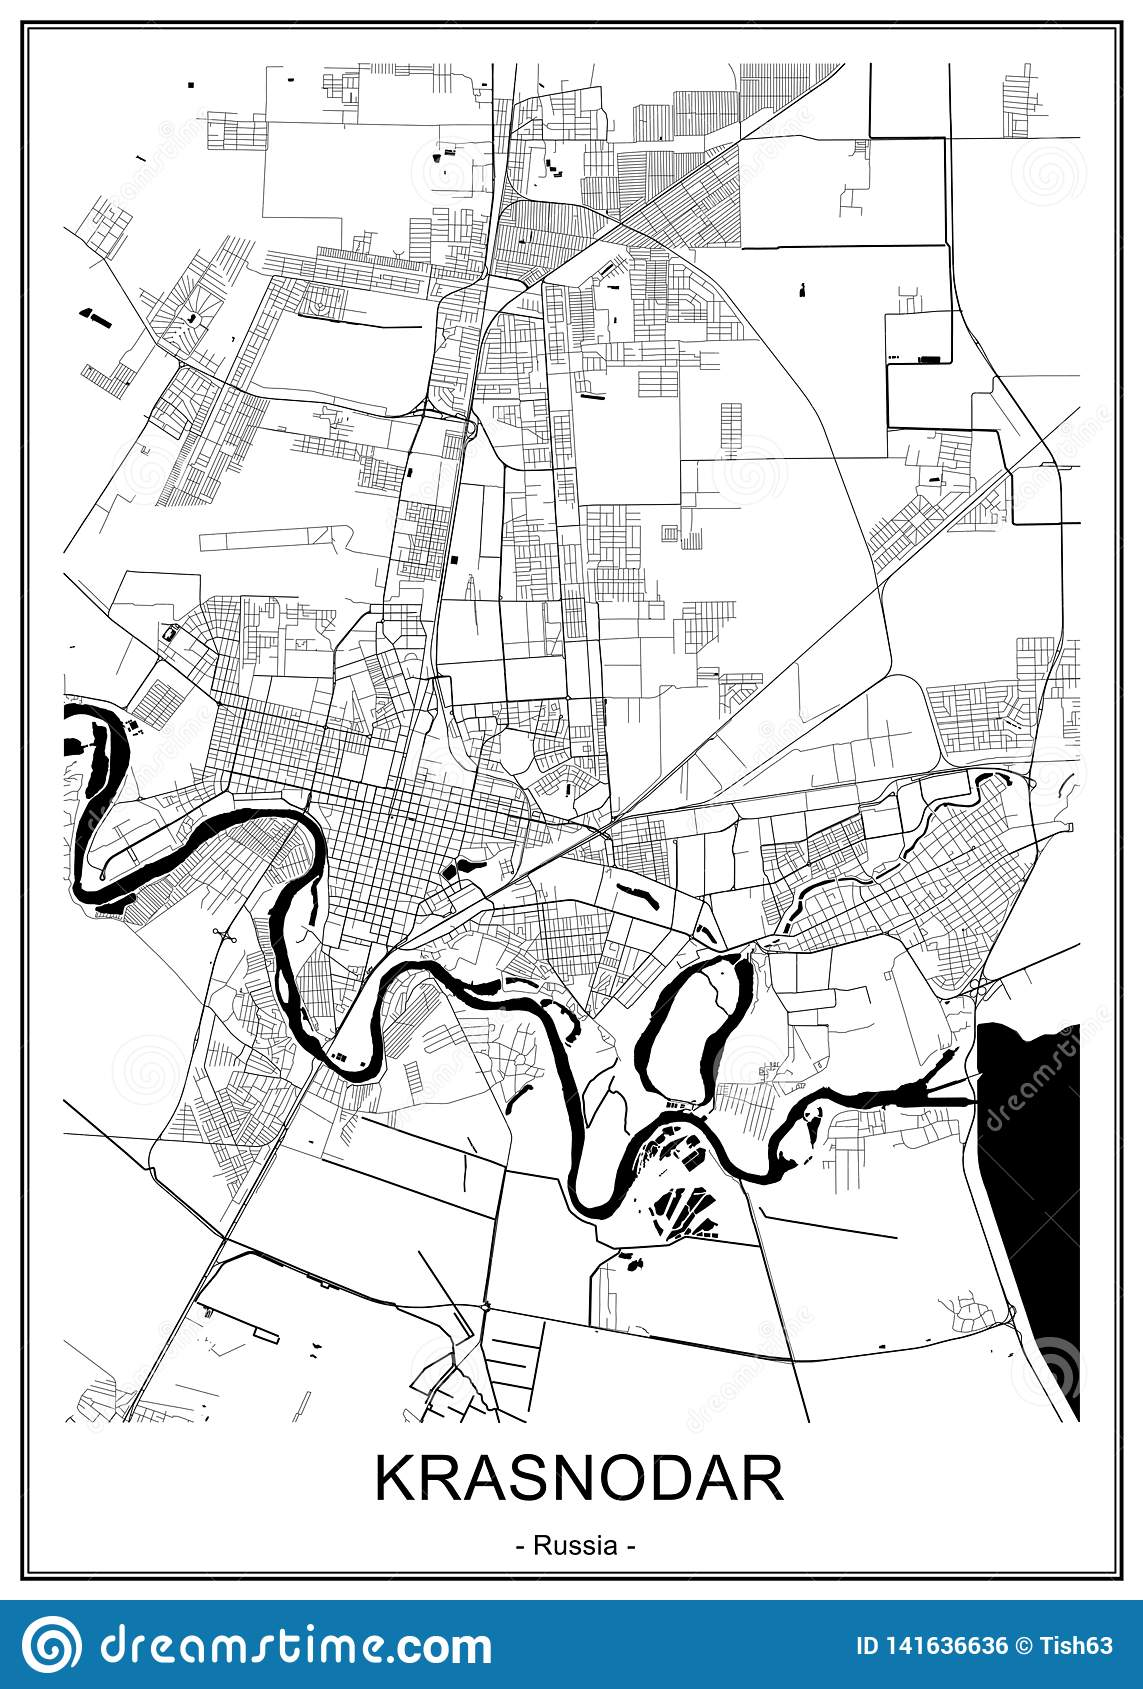 Map Of The City Of Krasnodar Russia Stock Illustration Illustration Of 2021 Scheme 141636636